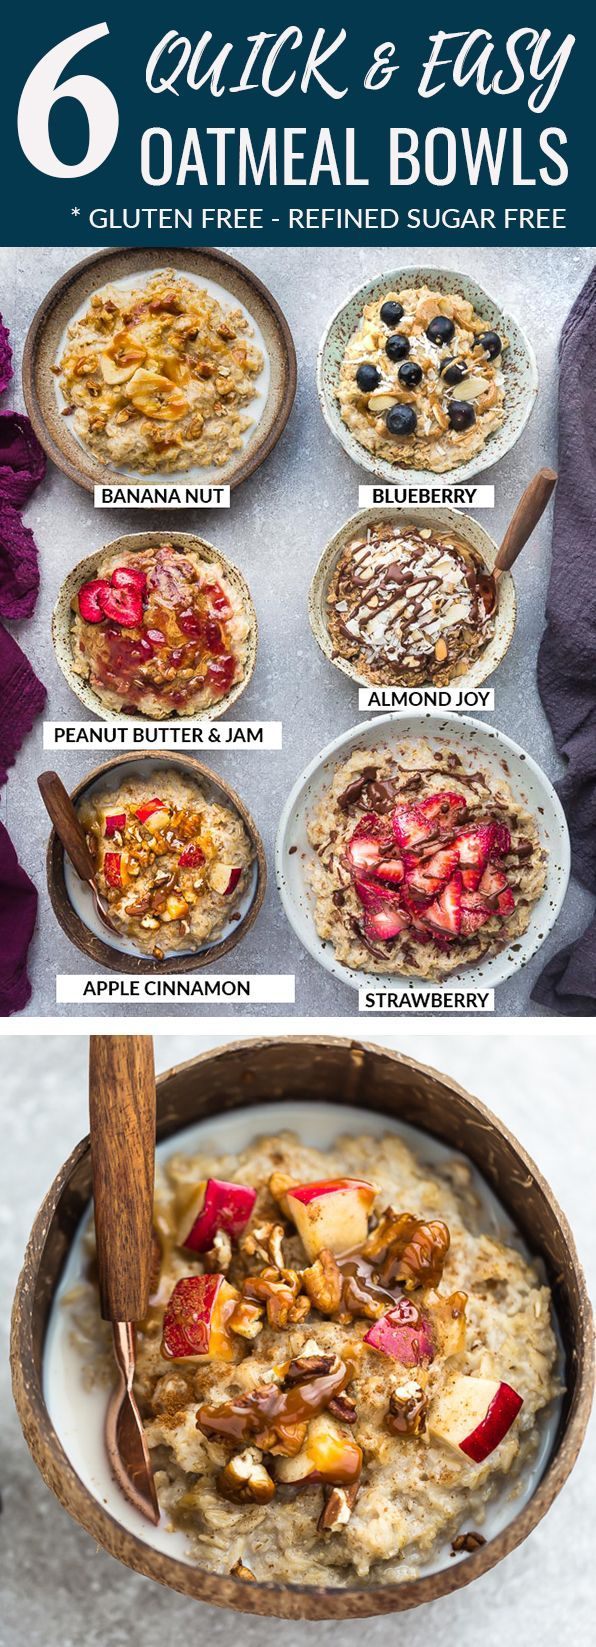 and Easy Oatmeal - 6 Ways – How to Cook the Perfect Bowl of Old Fashioned Rolled Oats with Six Healthy & Delicious Recipes. A quick & healthy make ahead breakfast for cooler fall / winter mornings with creamy results every time. Best of all, gluten free, refined sugar free & includes stovetop and Instant Pot pressure ...